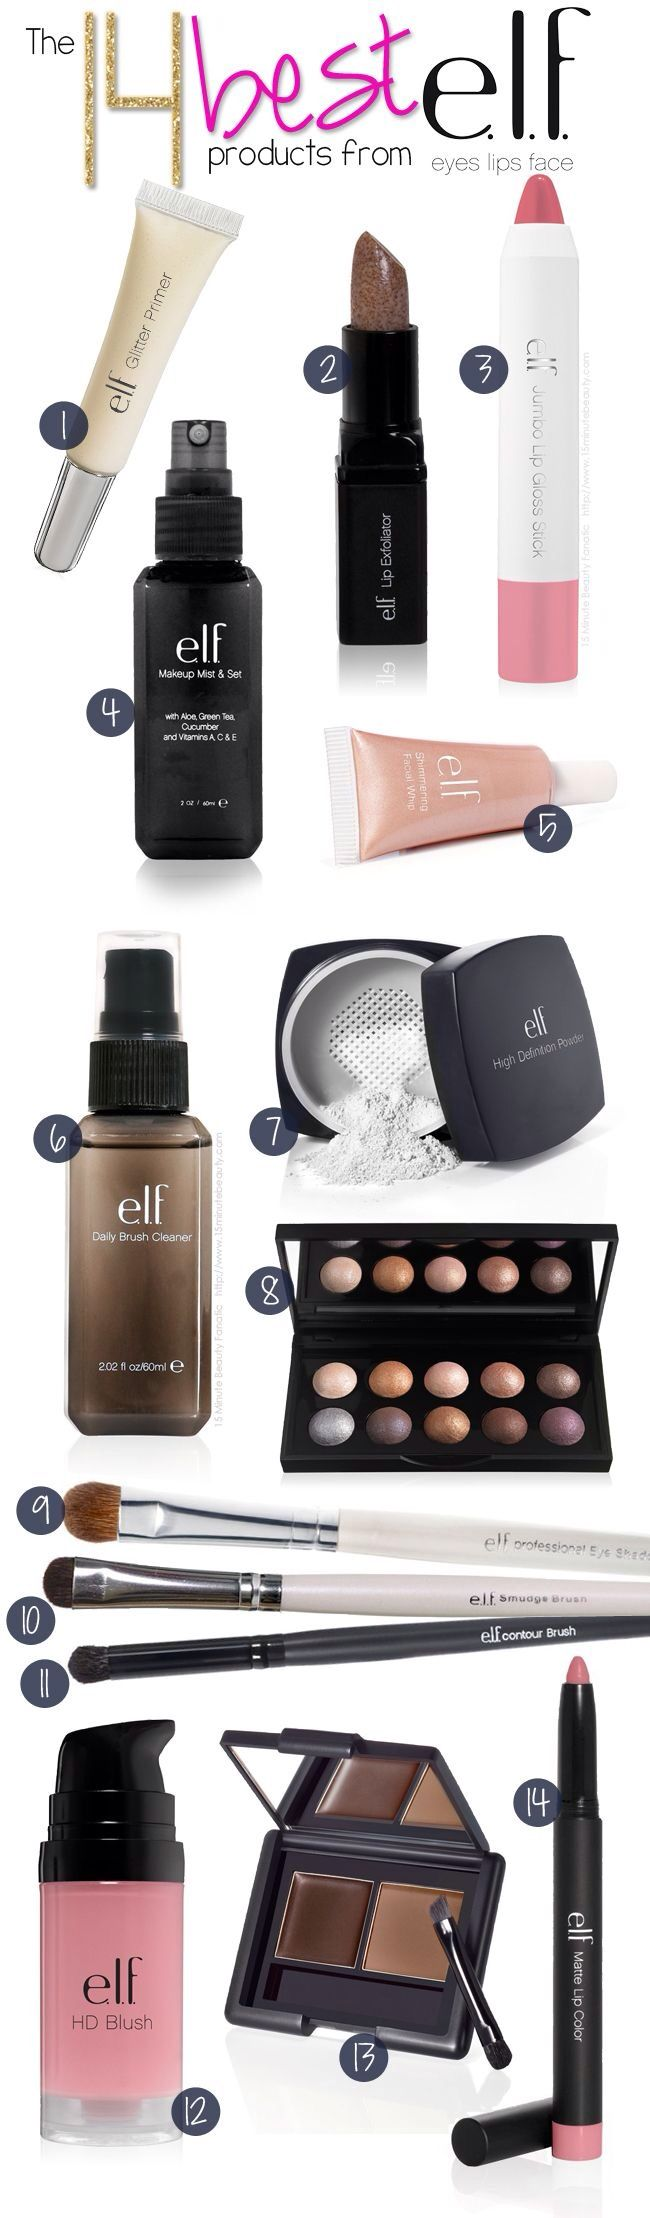 Inexpensive but good quality makeup found at your local